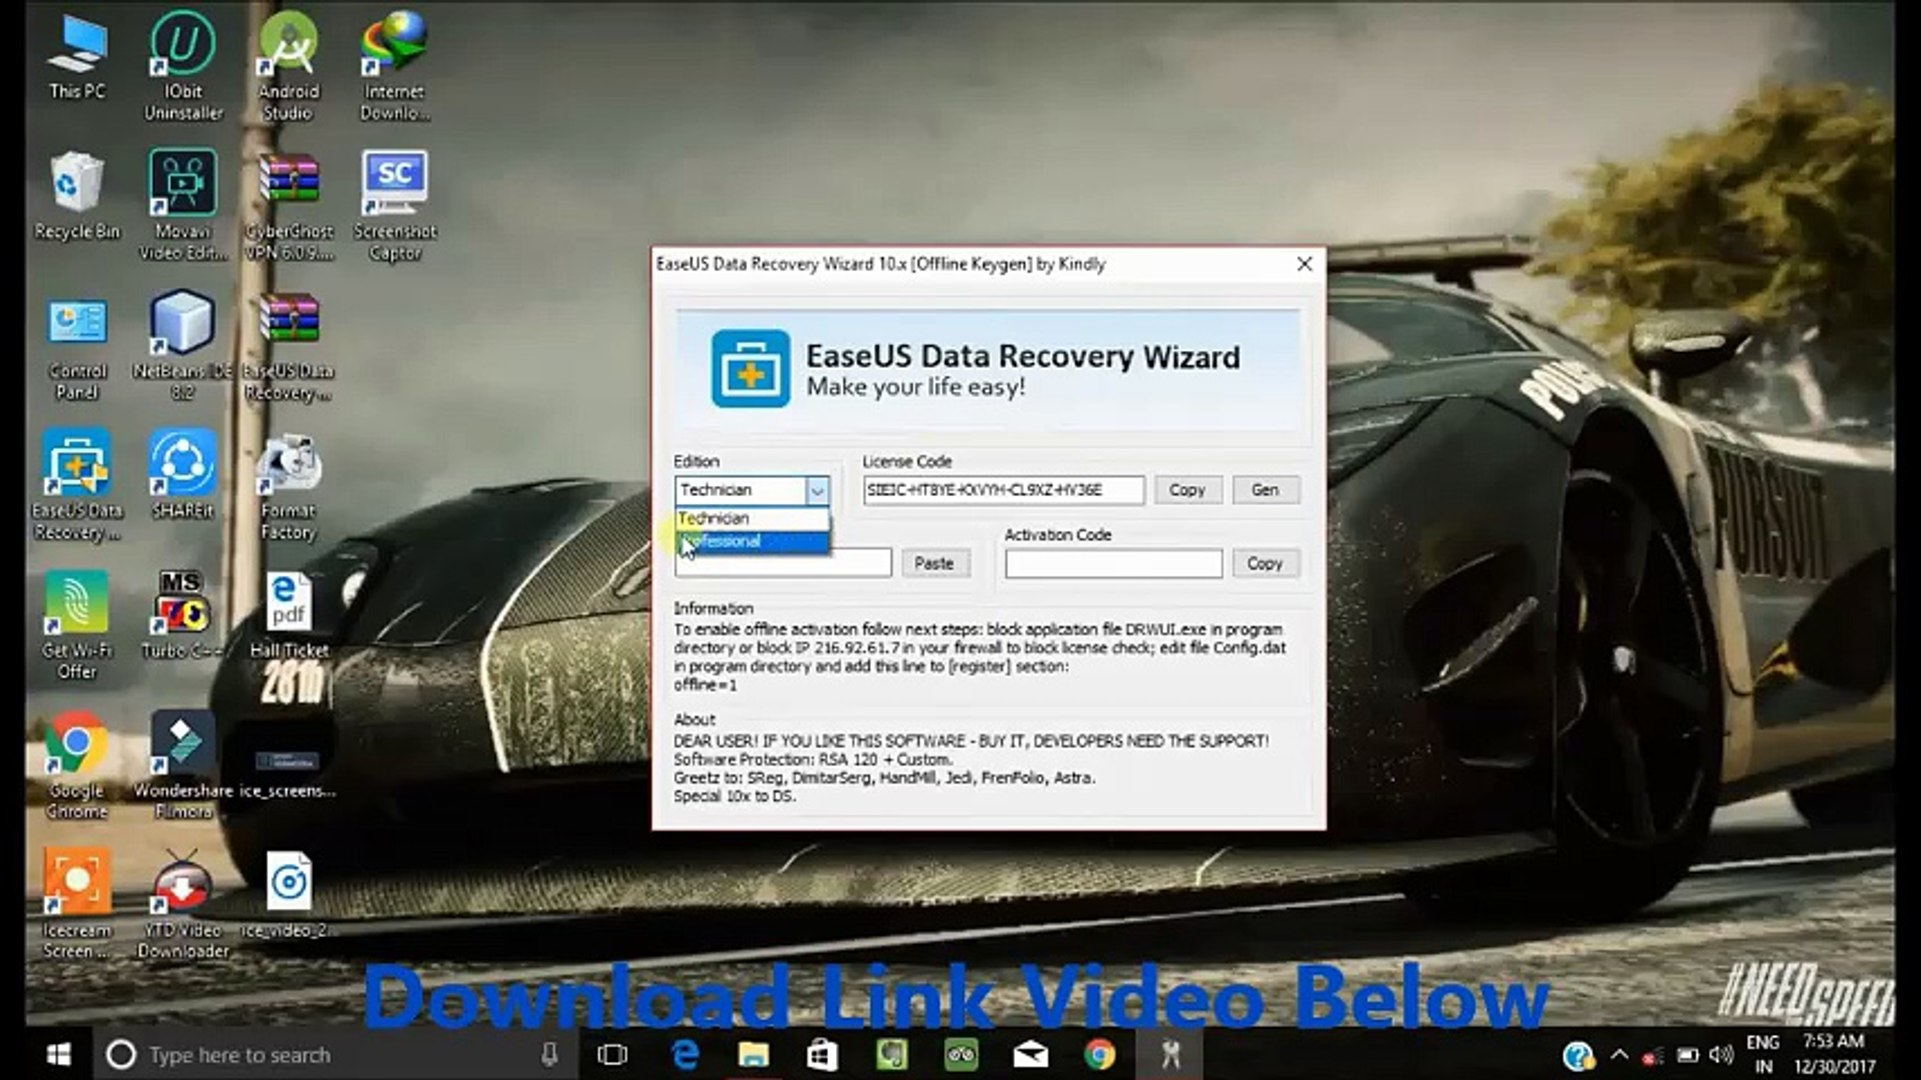 easeus data recovery wizard license key generator 11.9.0